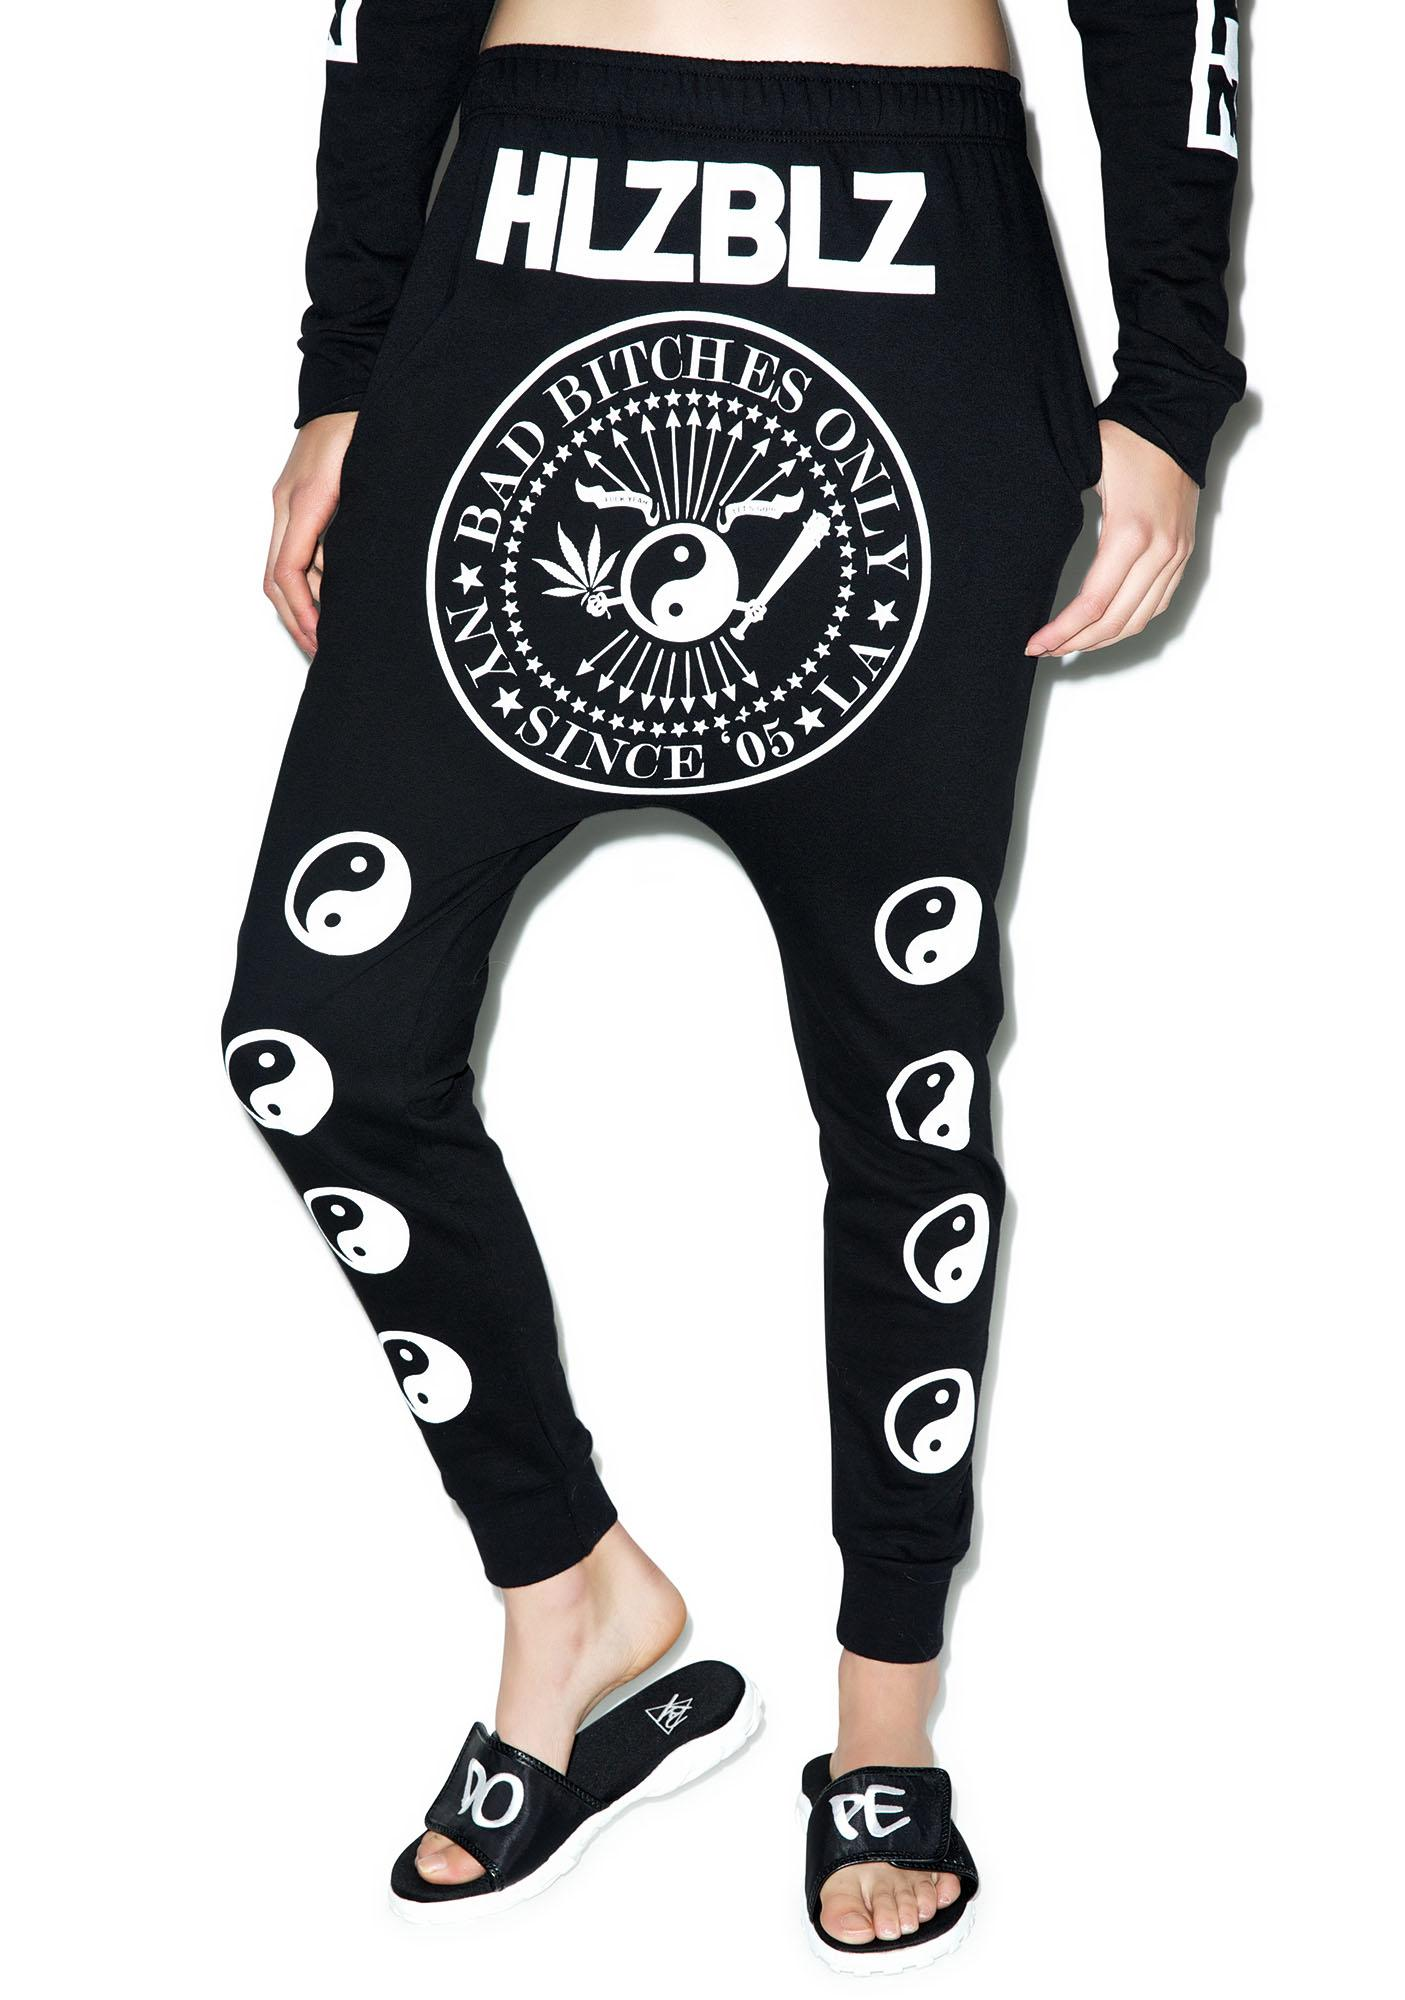 HLZBLZ Balance Sweat Pants